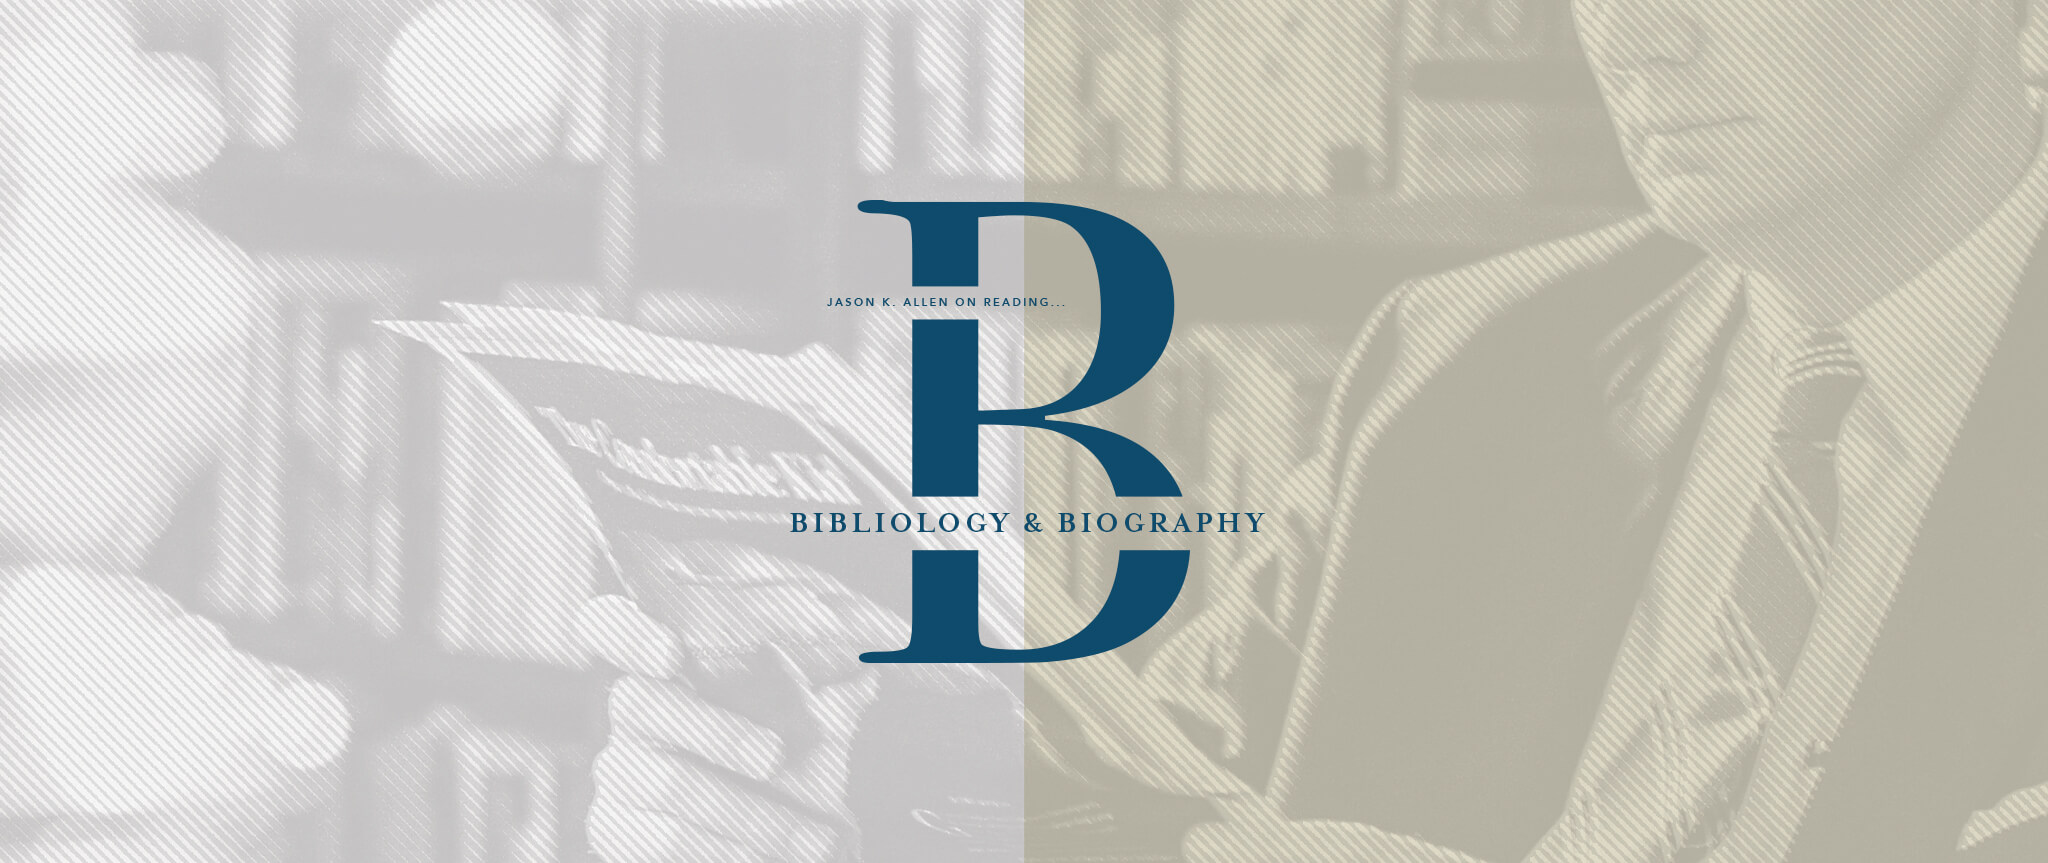 Bibliology & Biography: Jason K  Allen on Reading